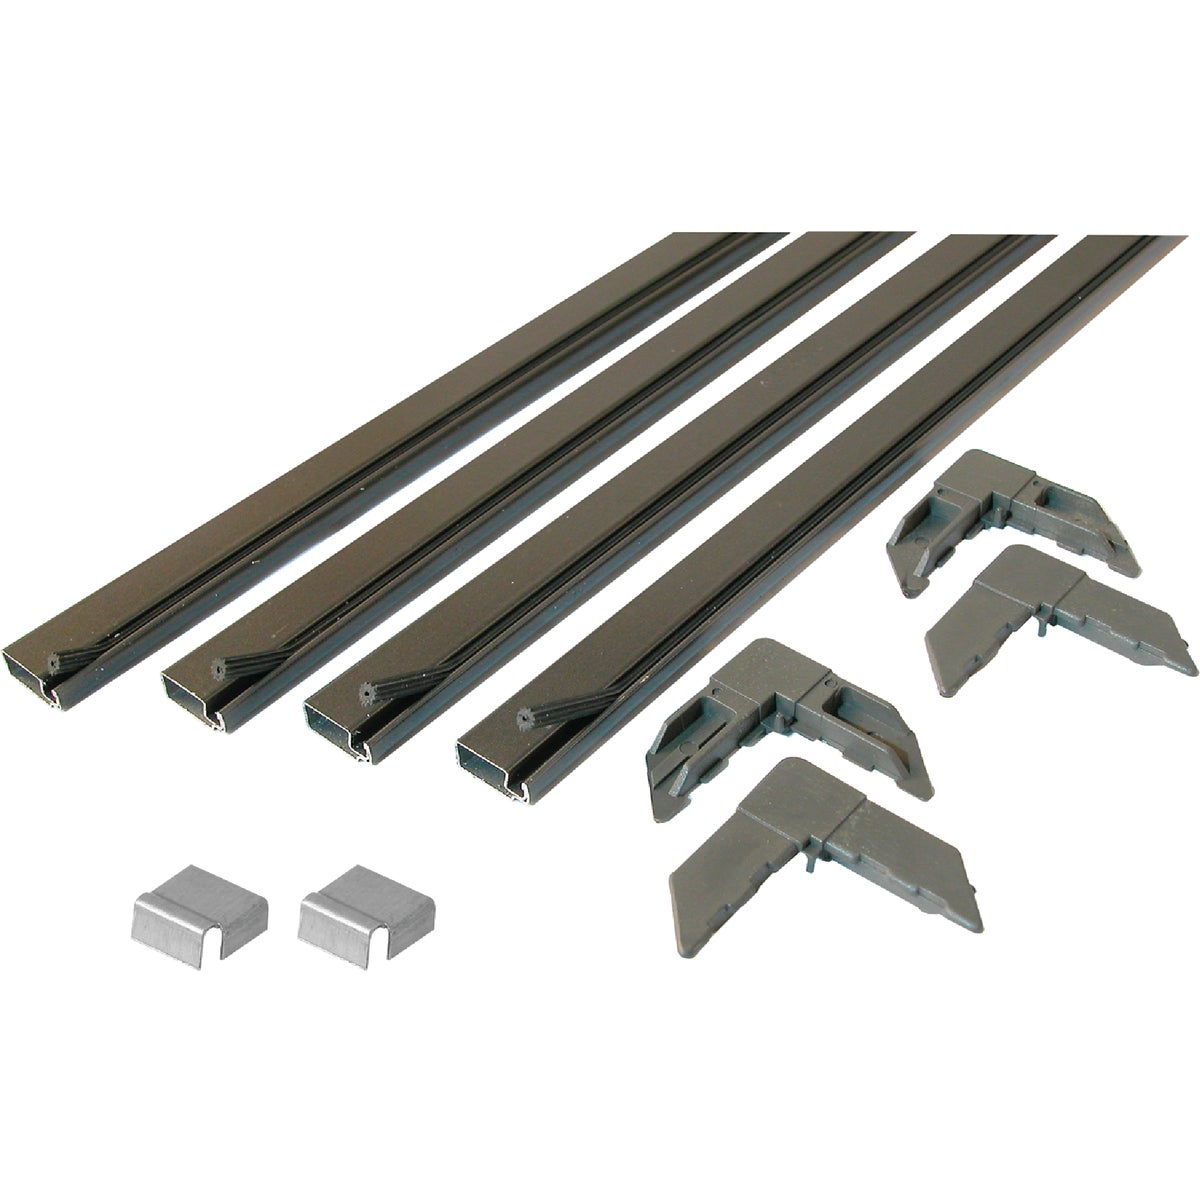 3/4X5/16X5' FRAME KIT - PL7808 by Prime Line Products